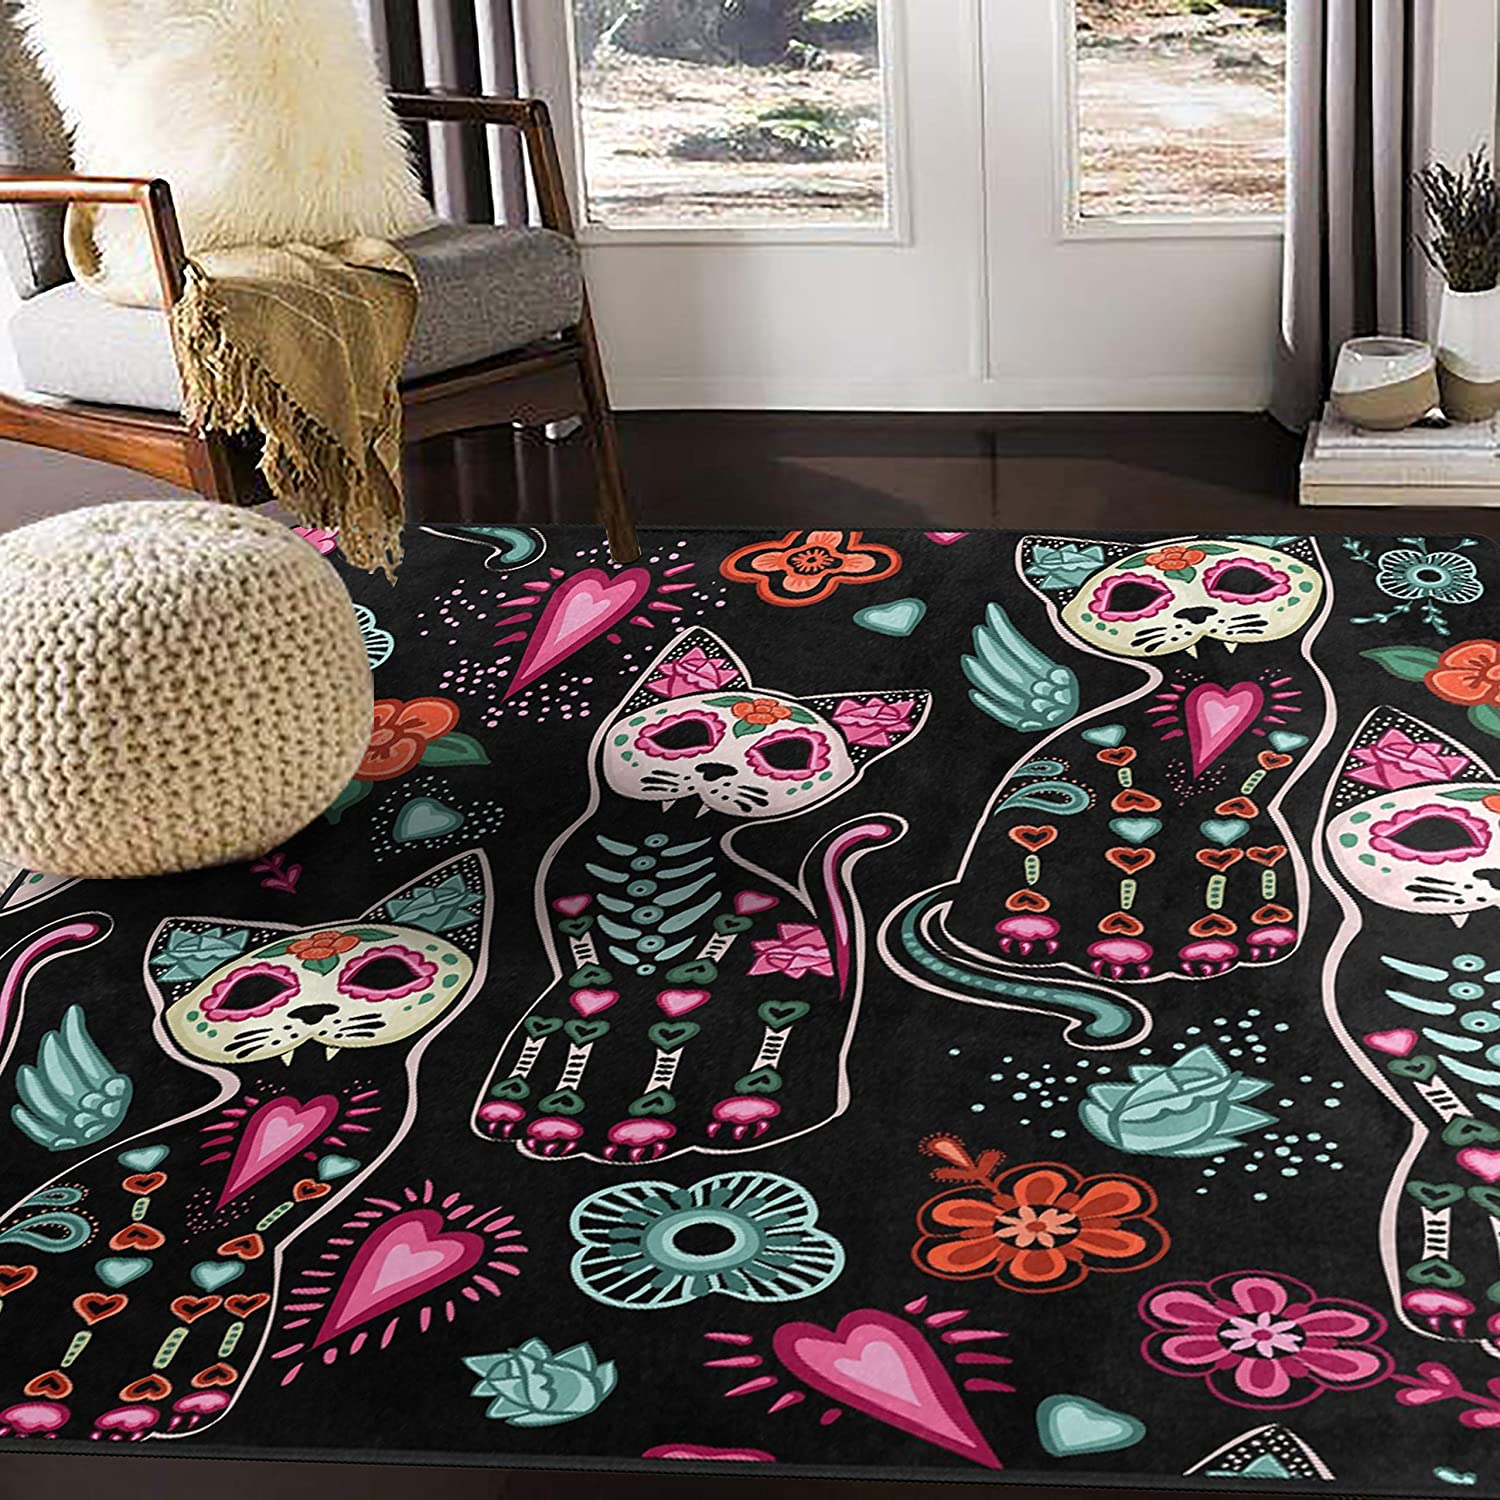 Amazon Com Alaza Floral Day Of The Dead Cat Kitten Sugar Skull Area Rug Rugs For Living Room Bedroom 5 3 X4 Furniture Decor